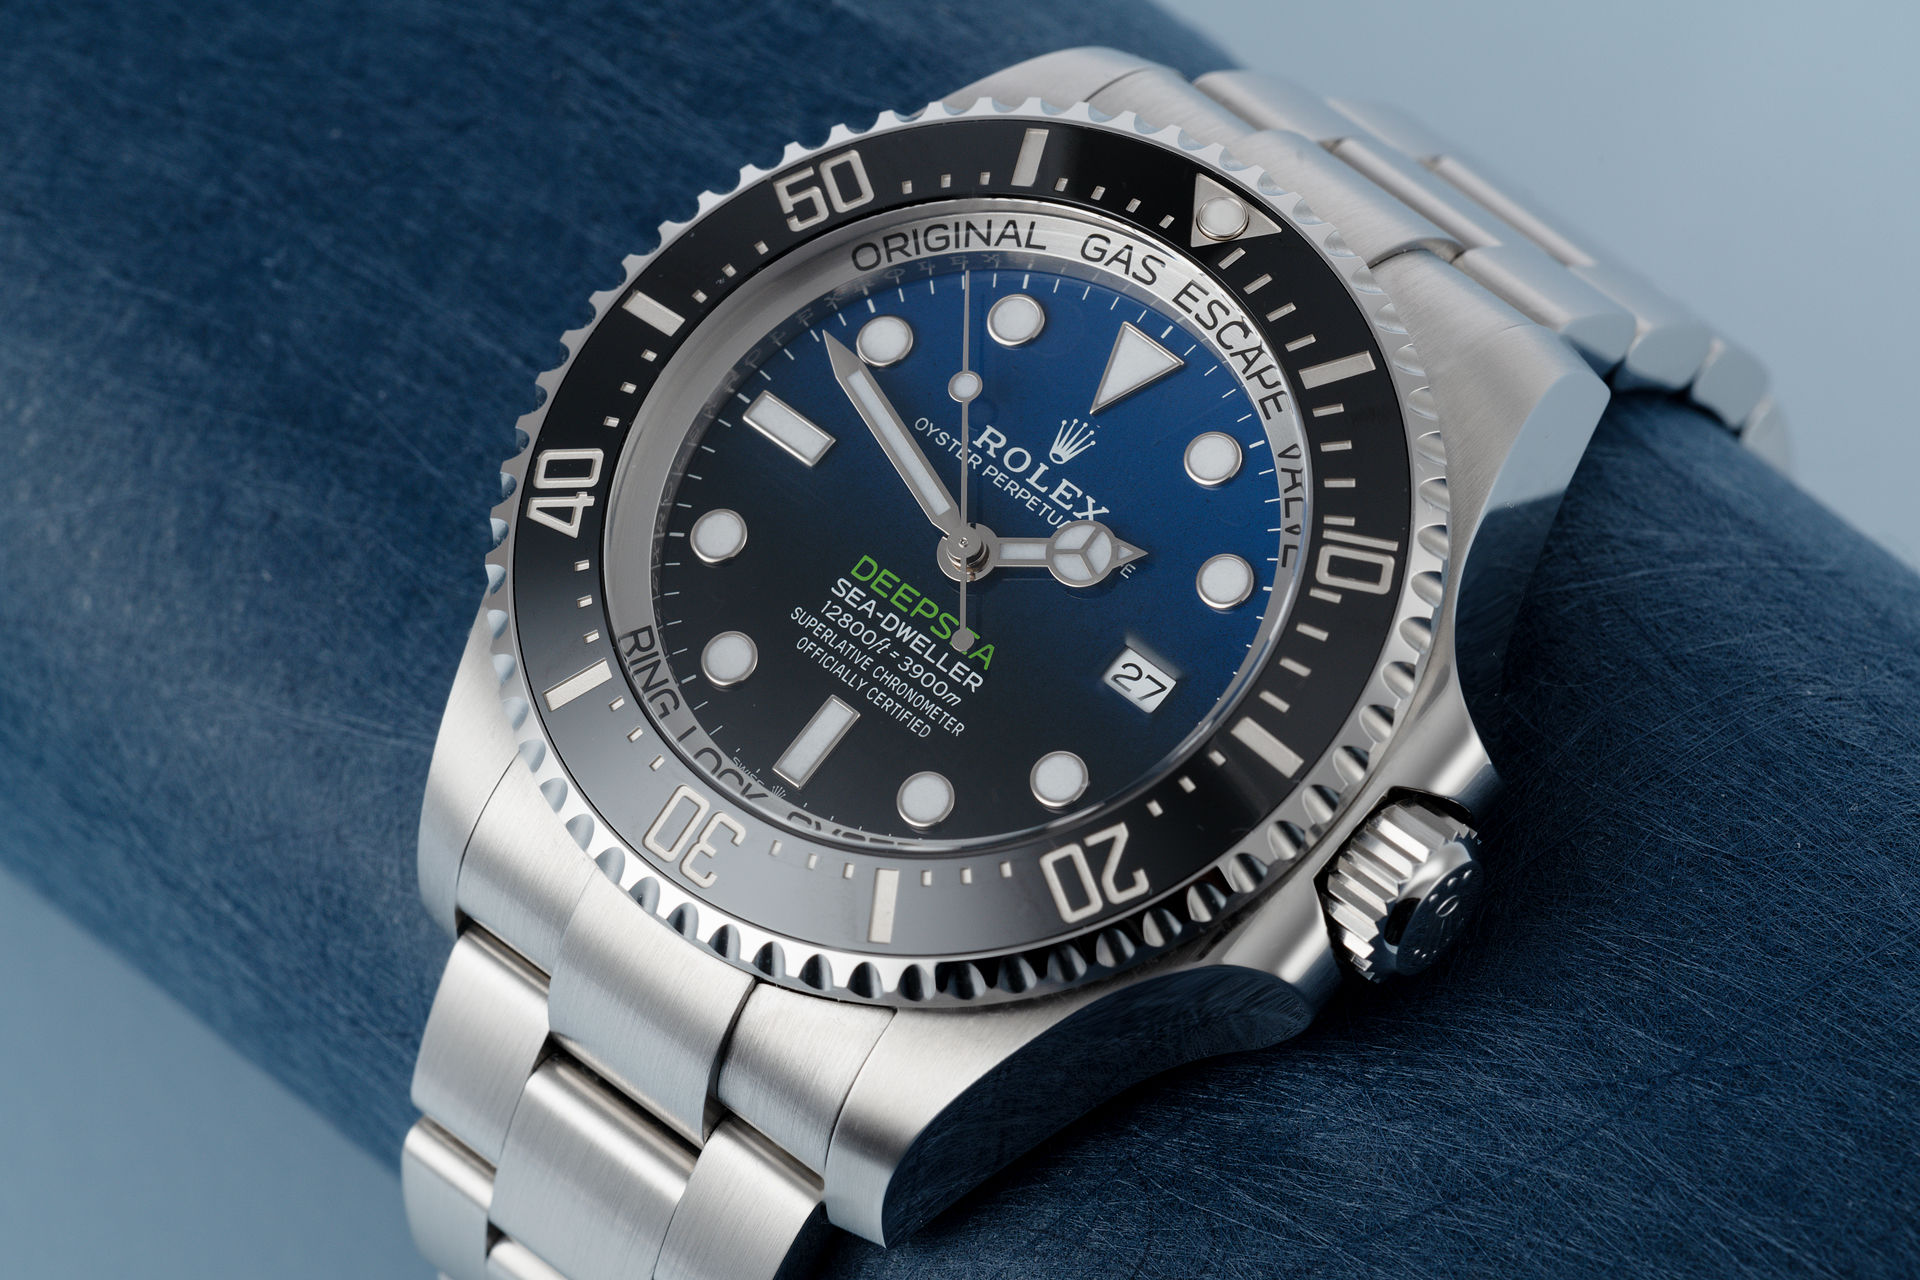 ref 126600 | 'Brand New' Five-Year Warranty | Rolex Sea-Dweller